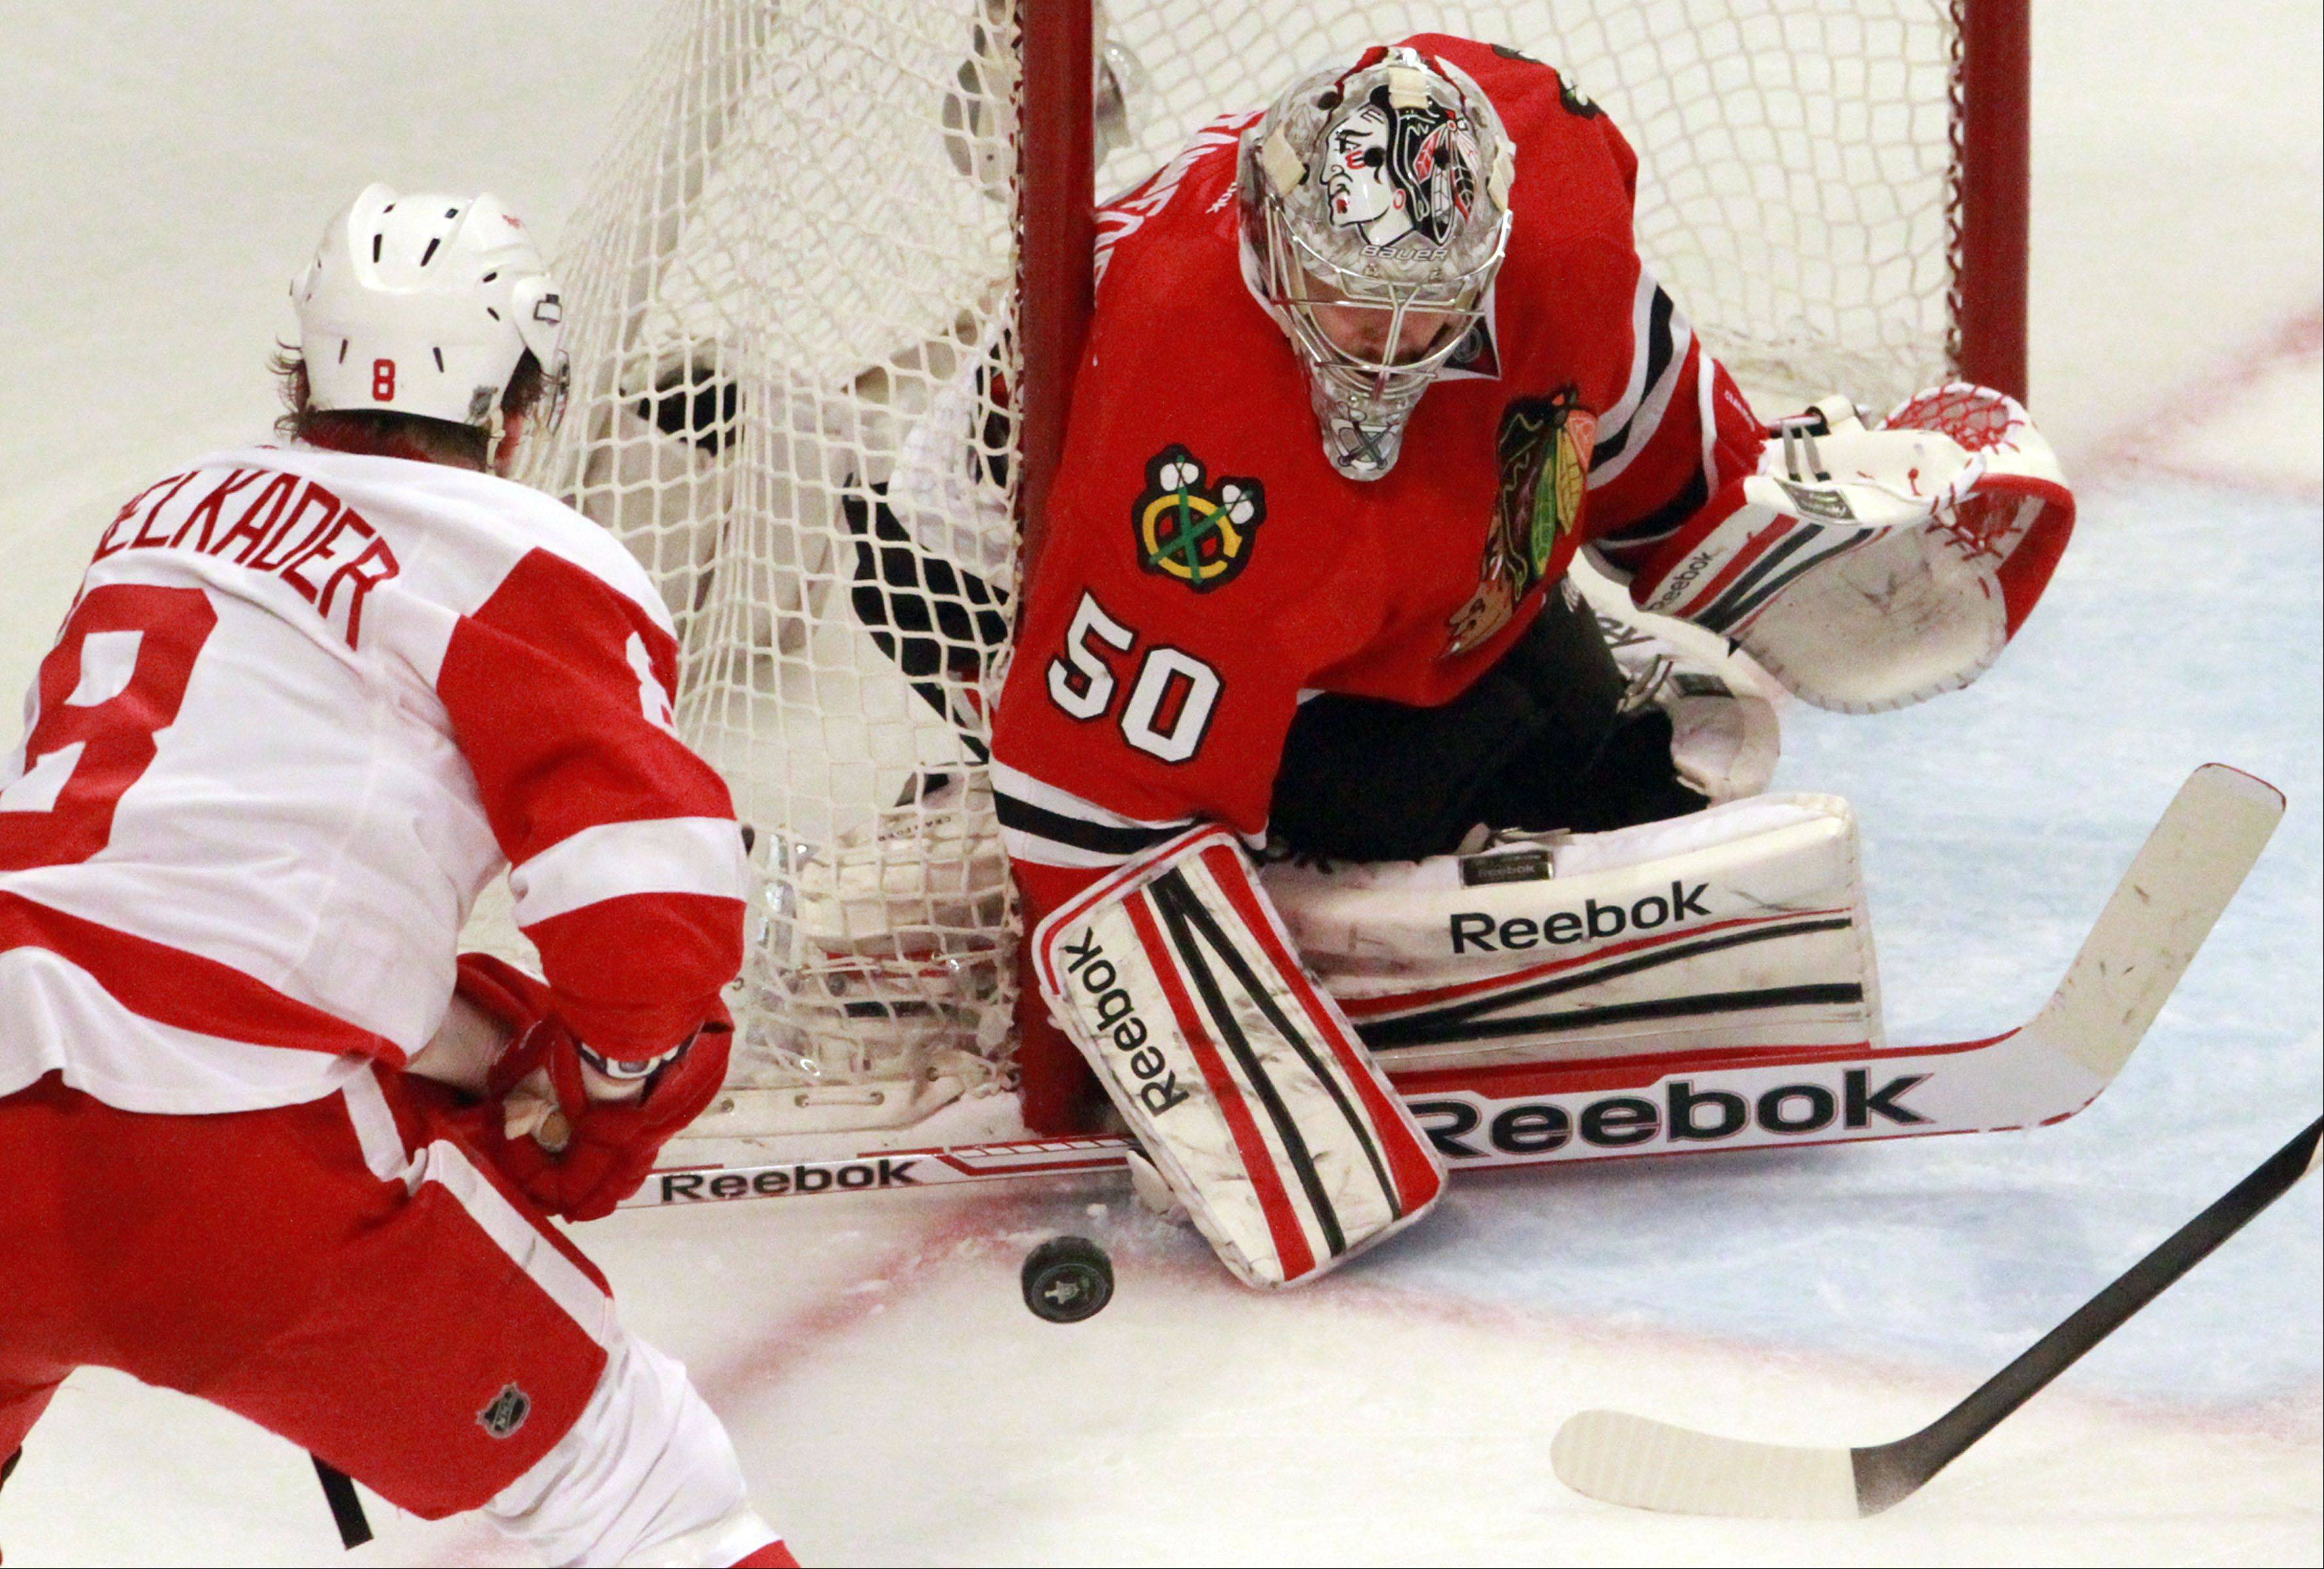 Corey Crawford stops a shot by Detroit Red Wings left wing Justin Abdelkader in the third period of Game 2.